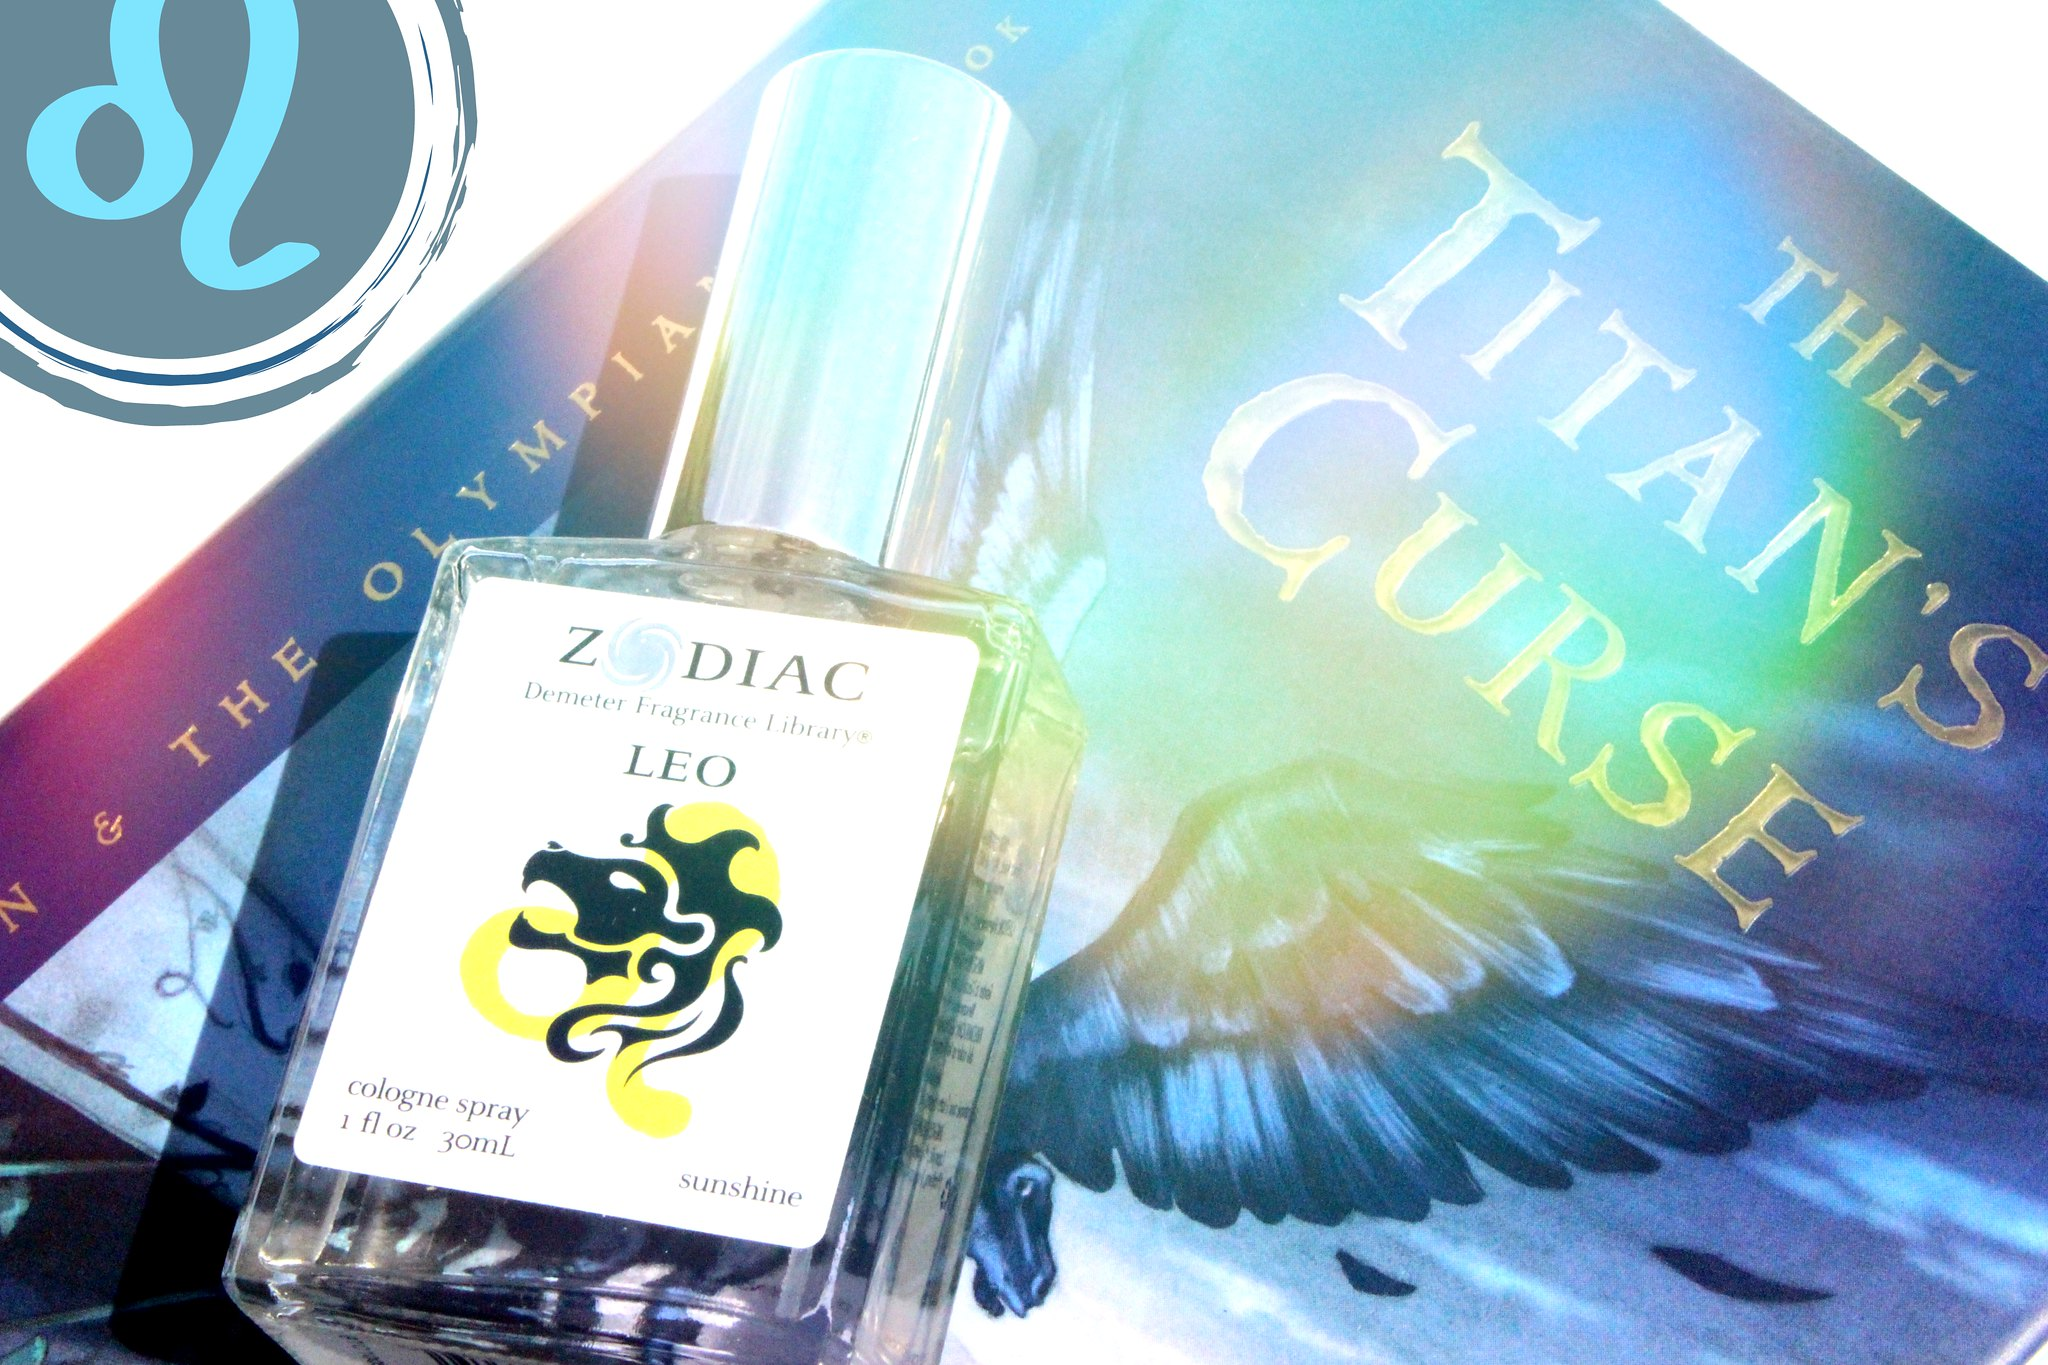 Demeter Fragrance Library Leo Sunshine